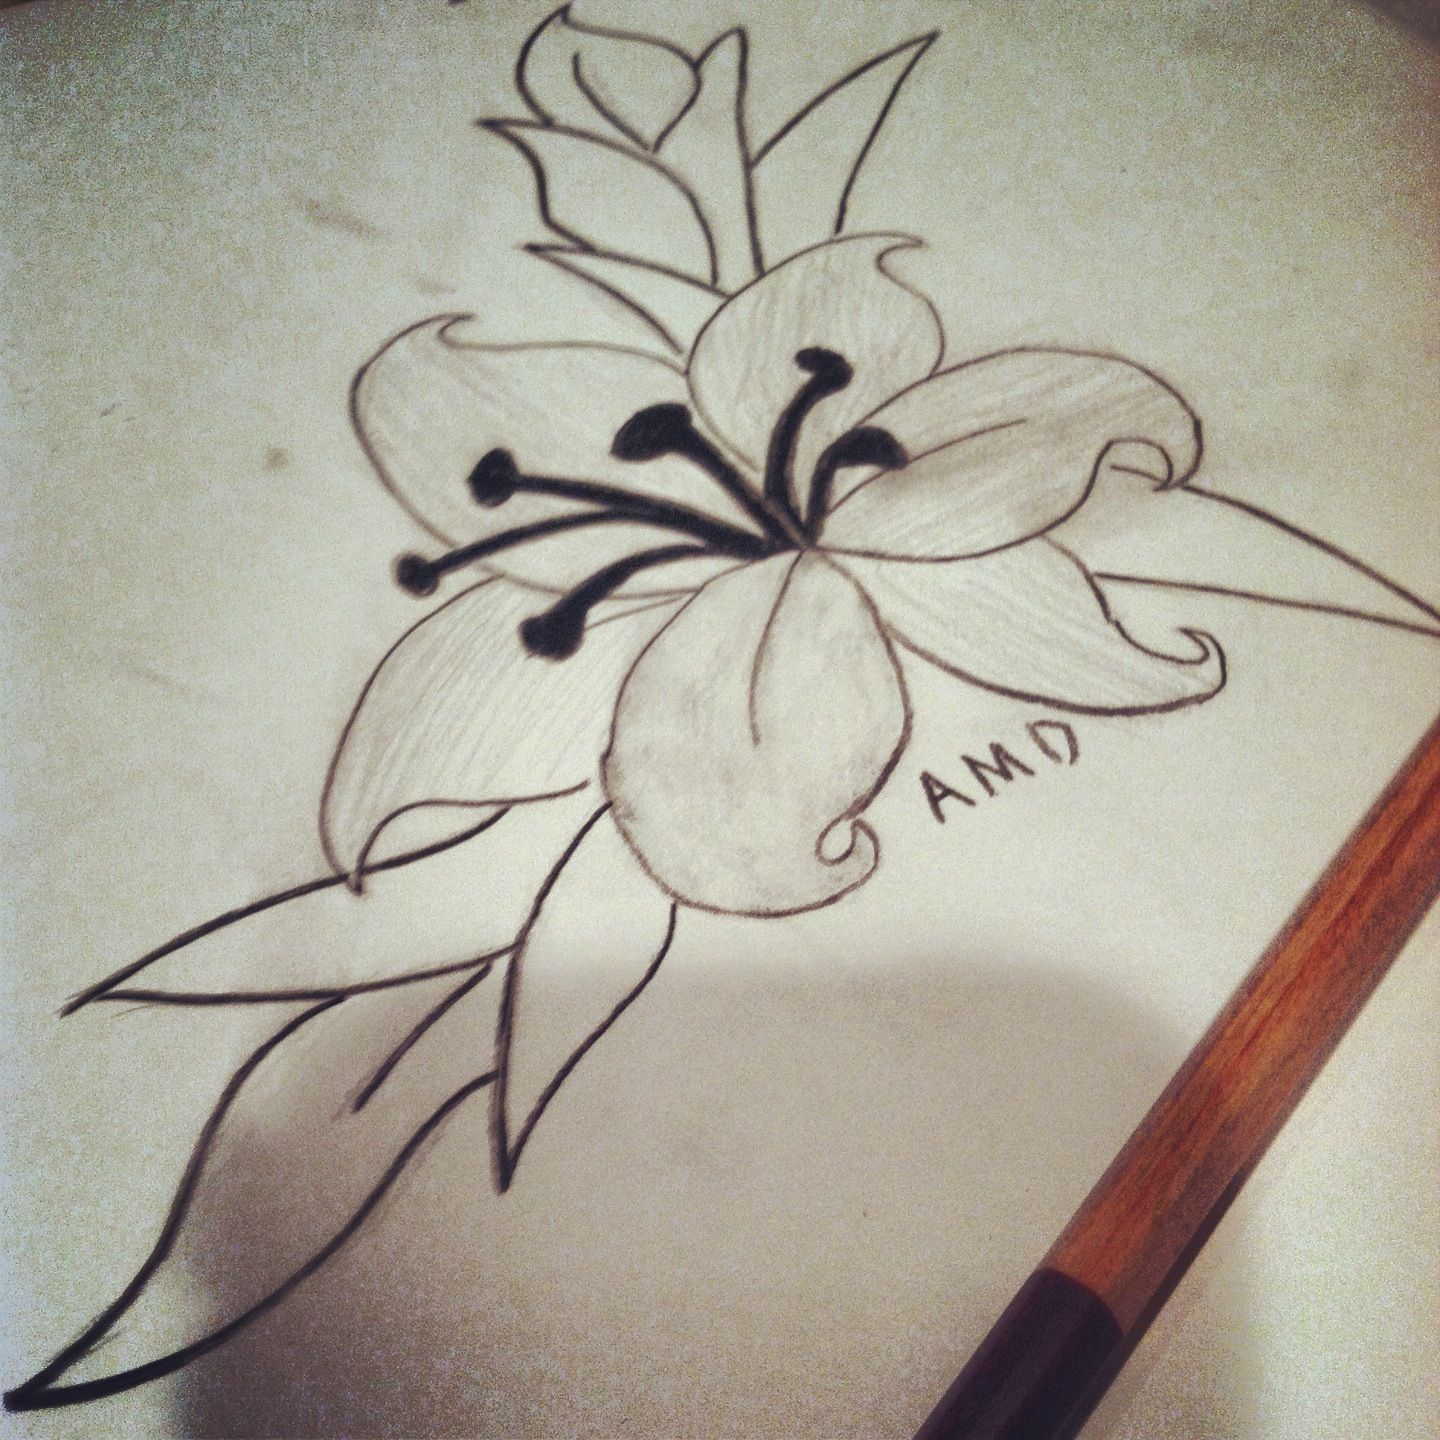 My Grandsons Drawing Of A Flower Things That Make Me Happy